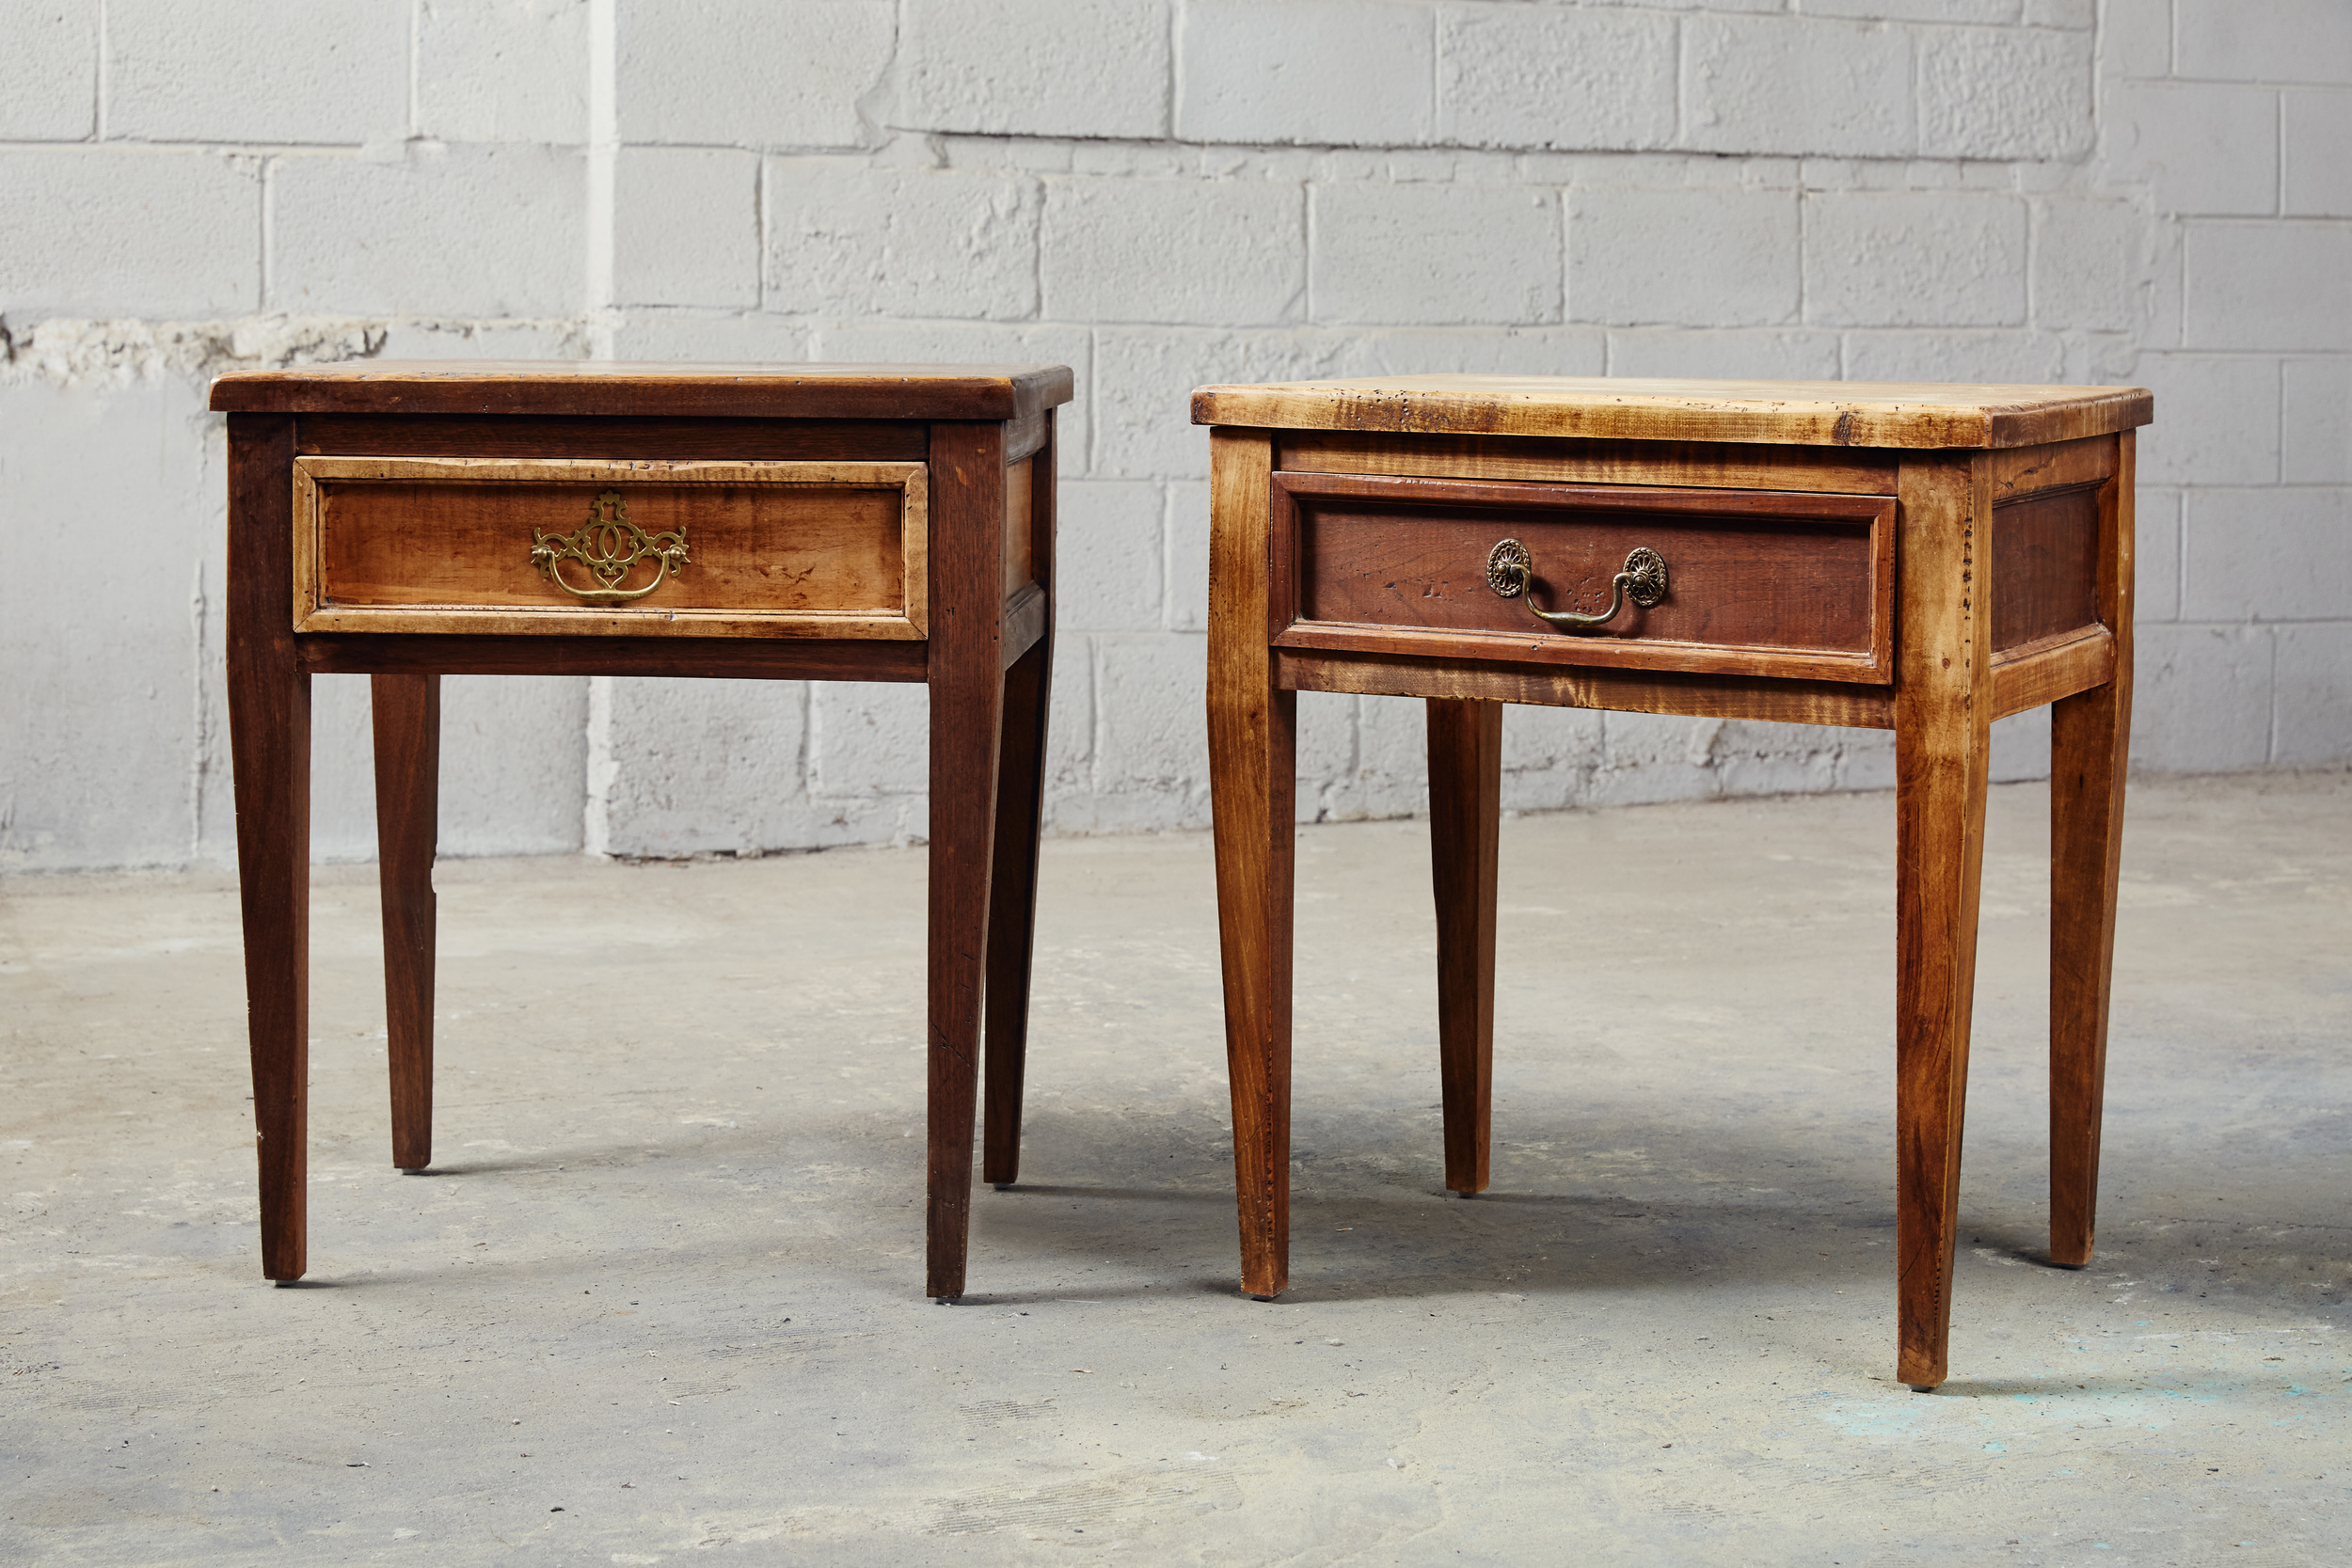 Reclaimed End Tables (Mix/Match)